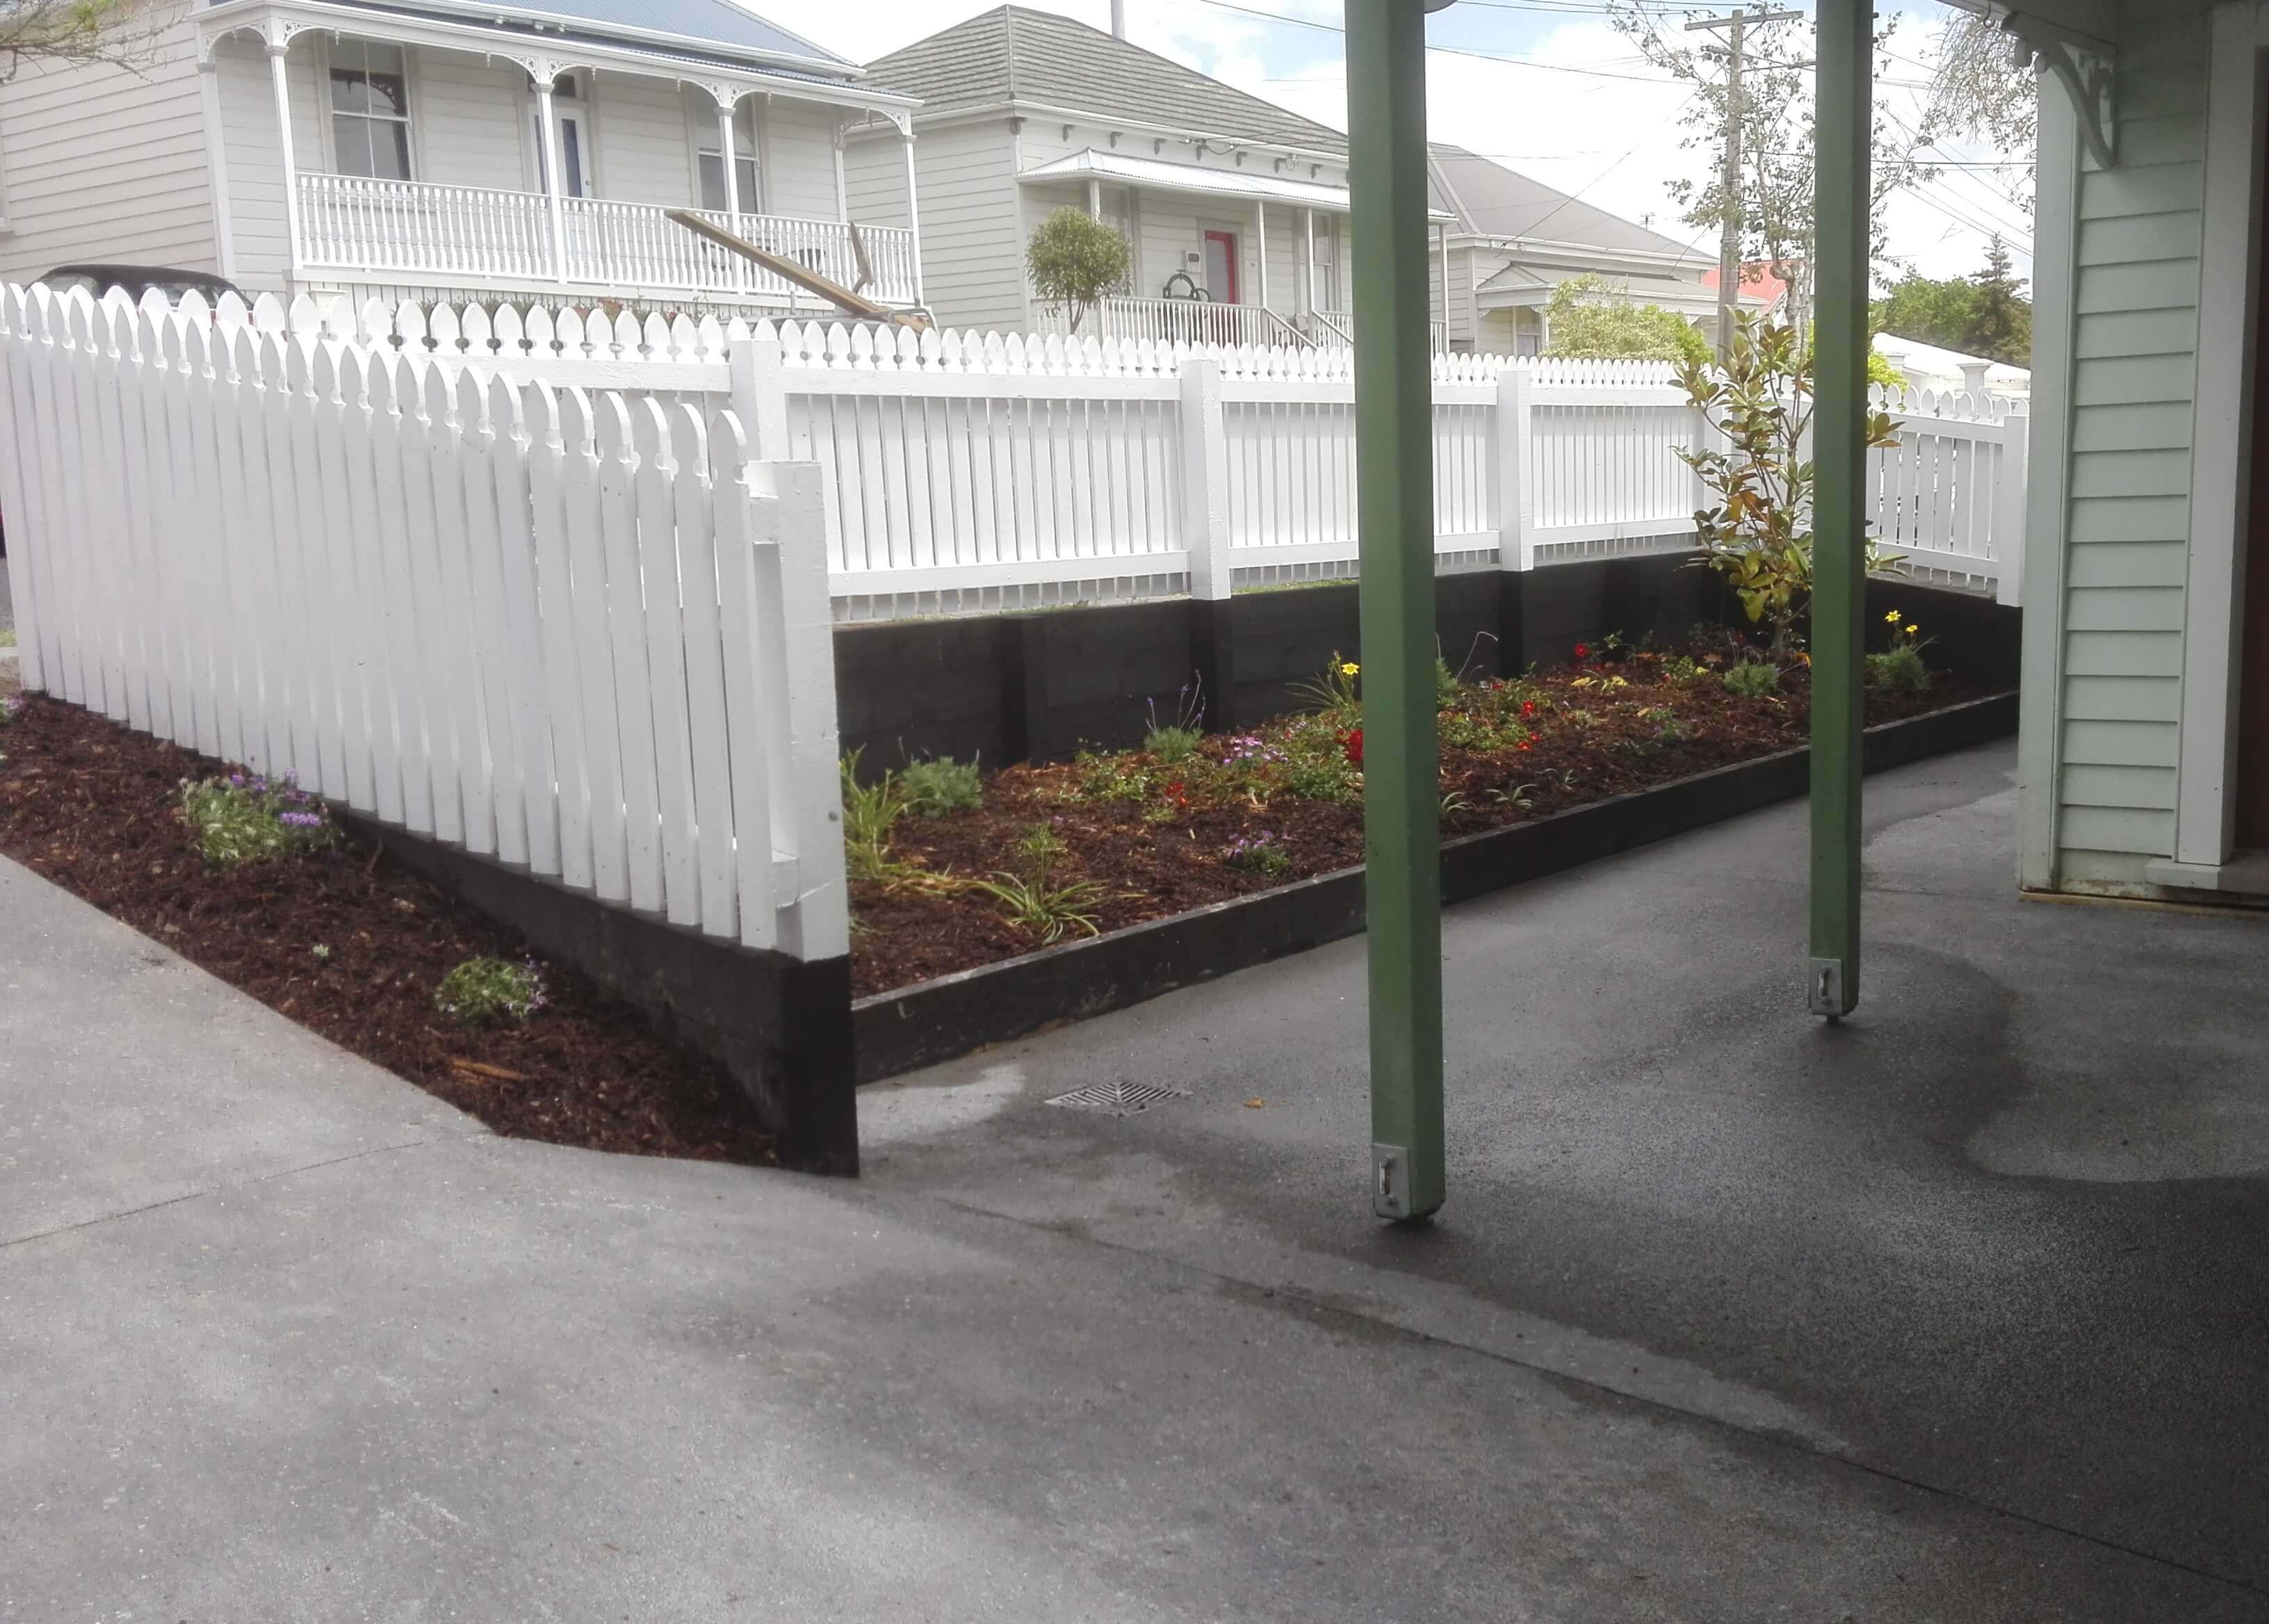 Concrete and fence after